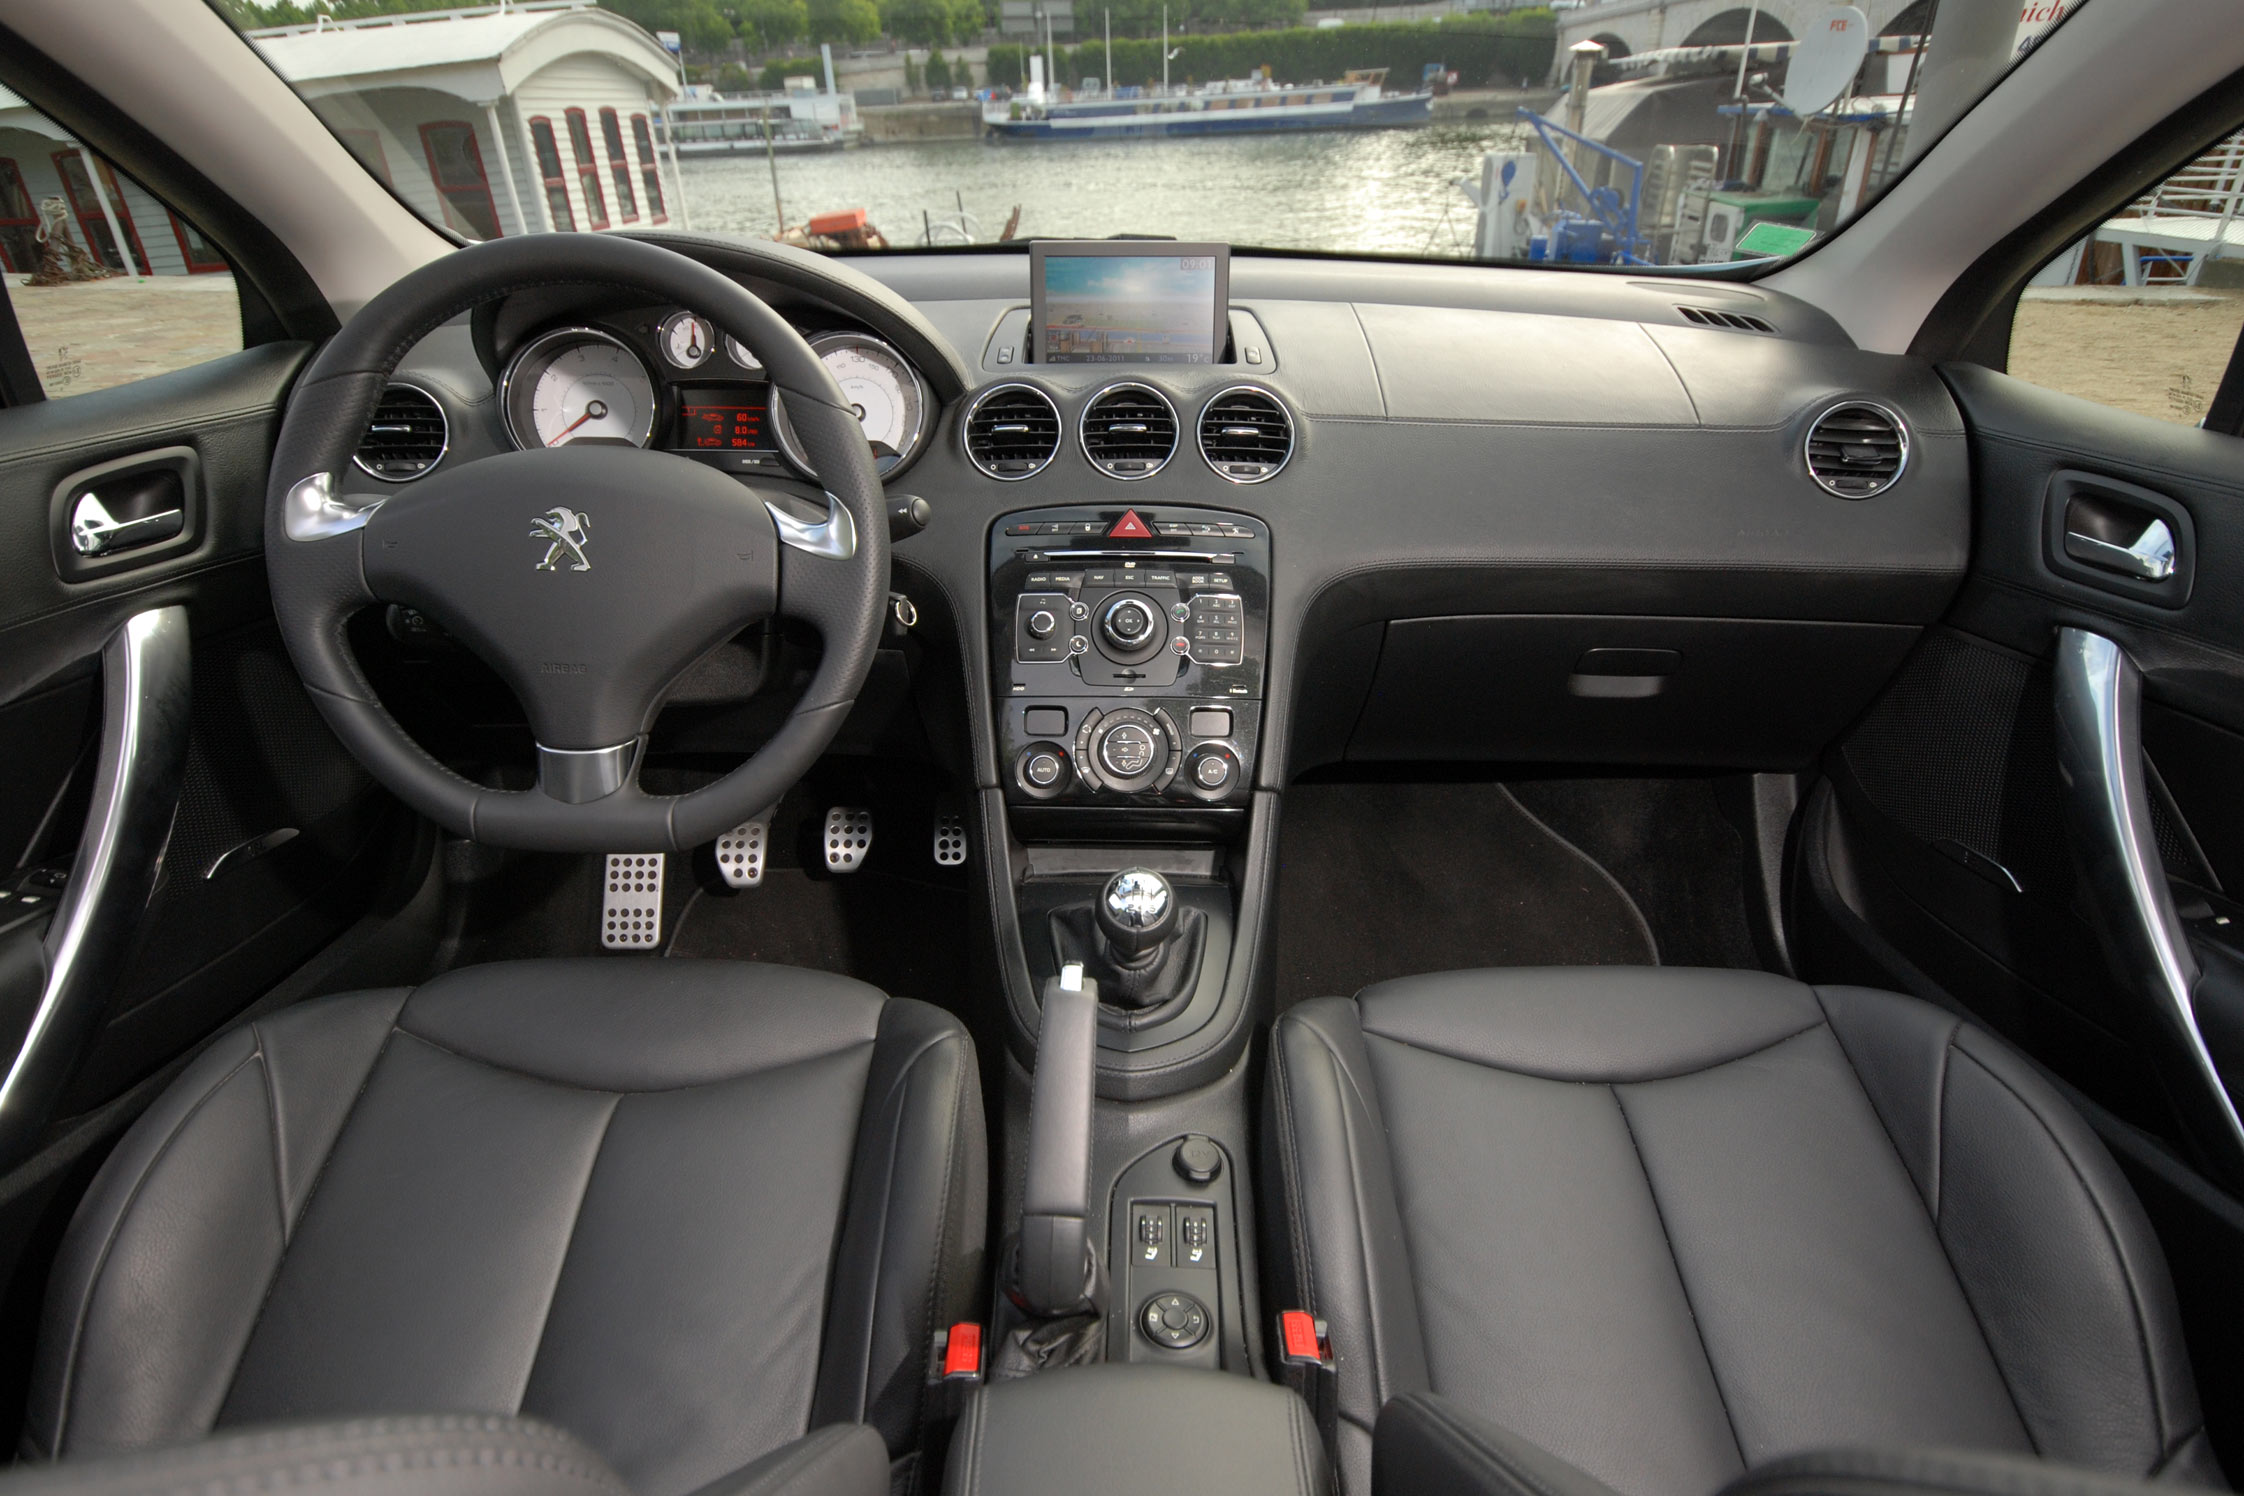 Essai peugeot 308 cc motorlegend for Interieur 308